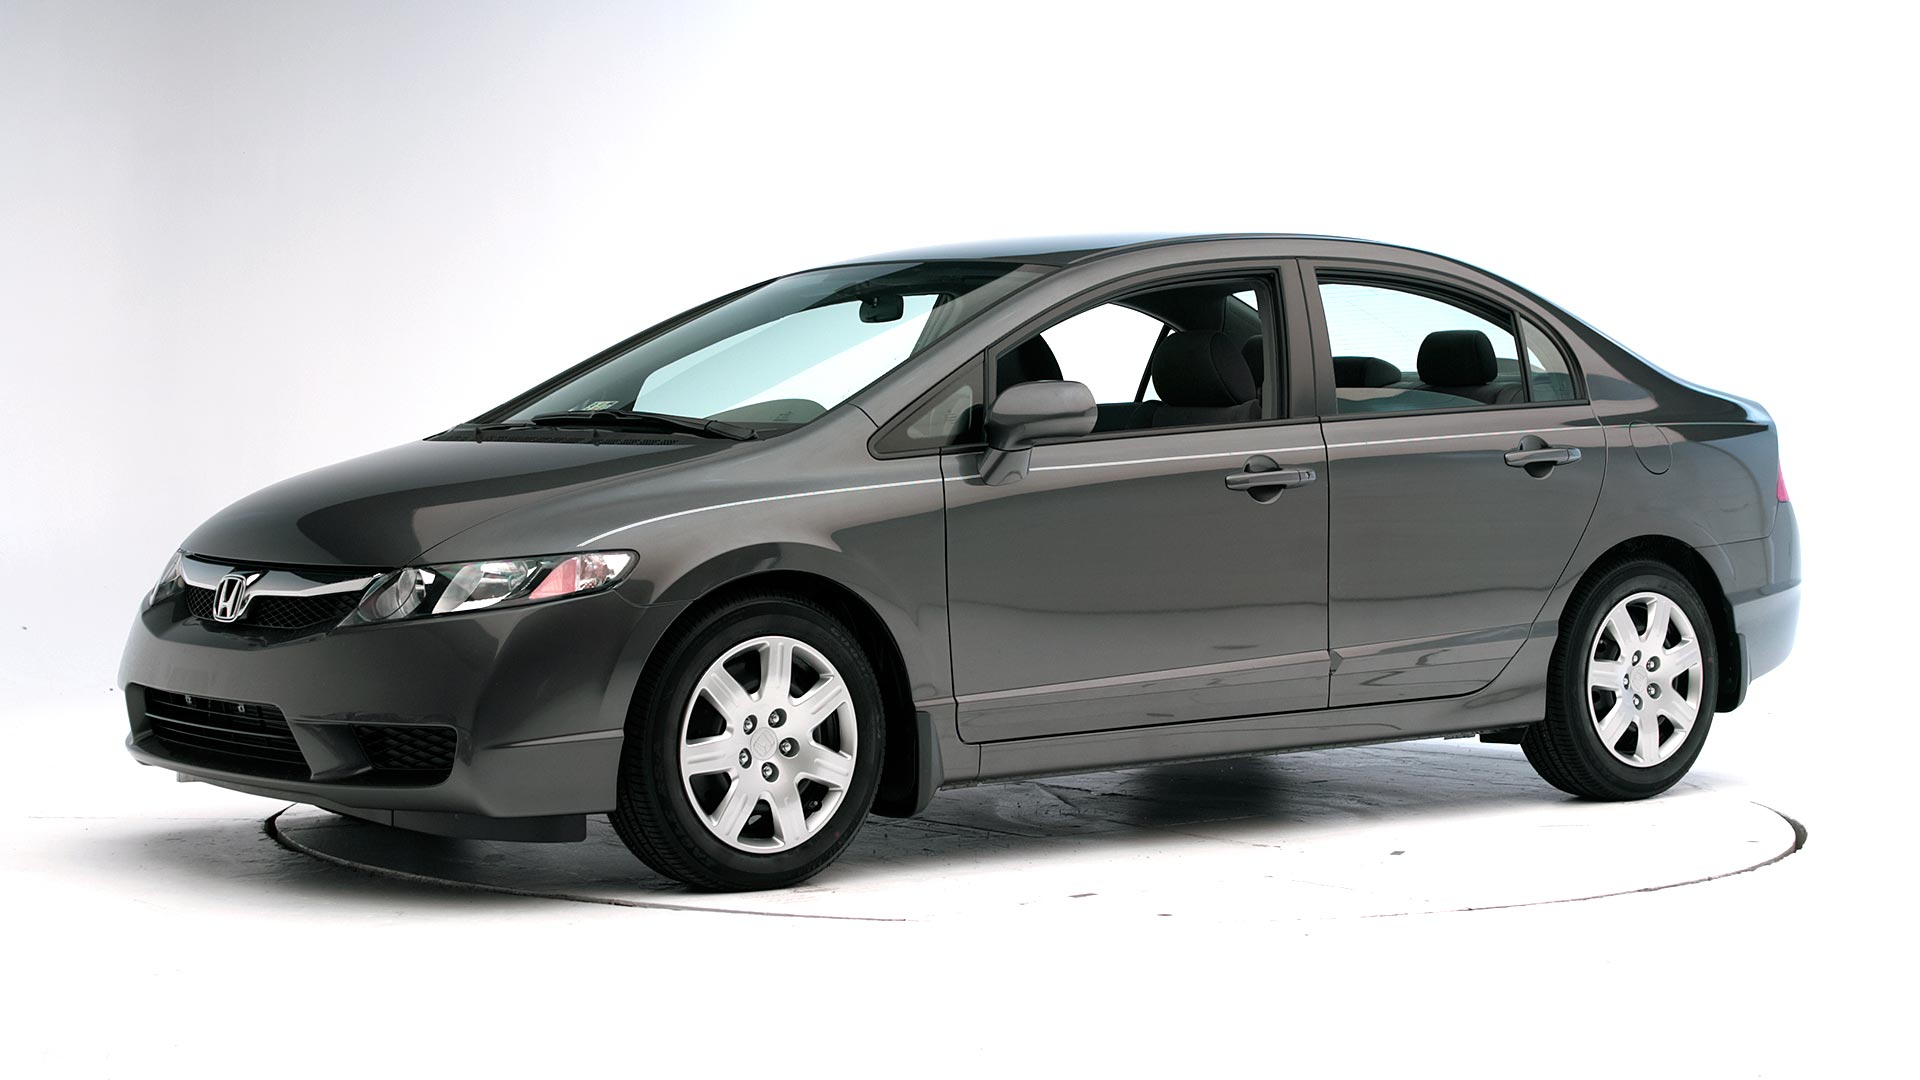 2010 Honda Civic 4-door sedan